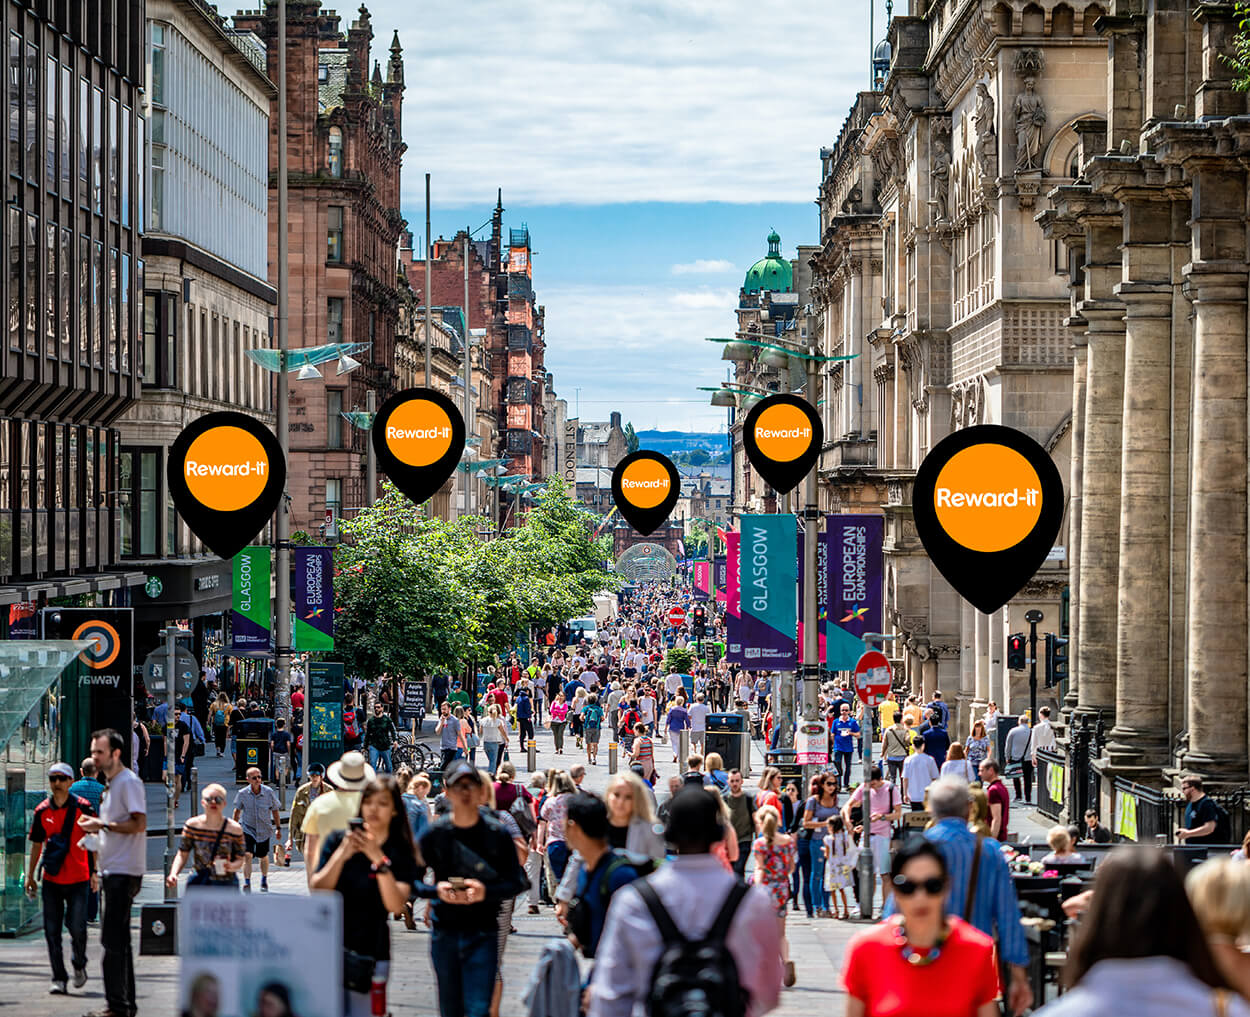 High street shops involved in town loyalty scheme